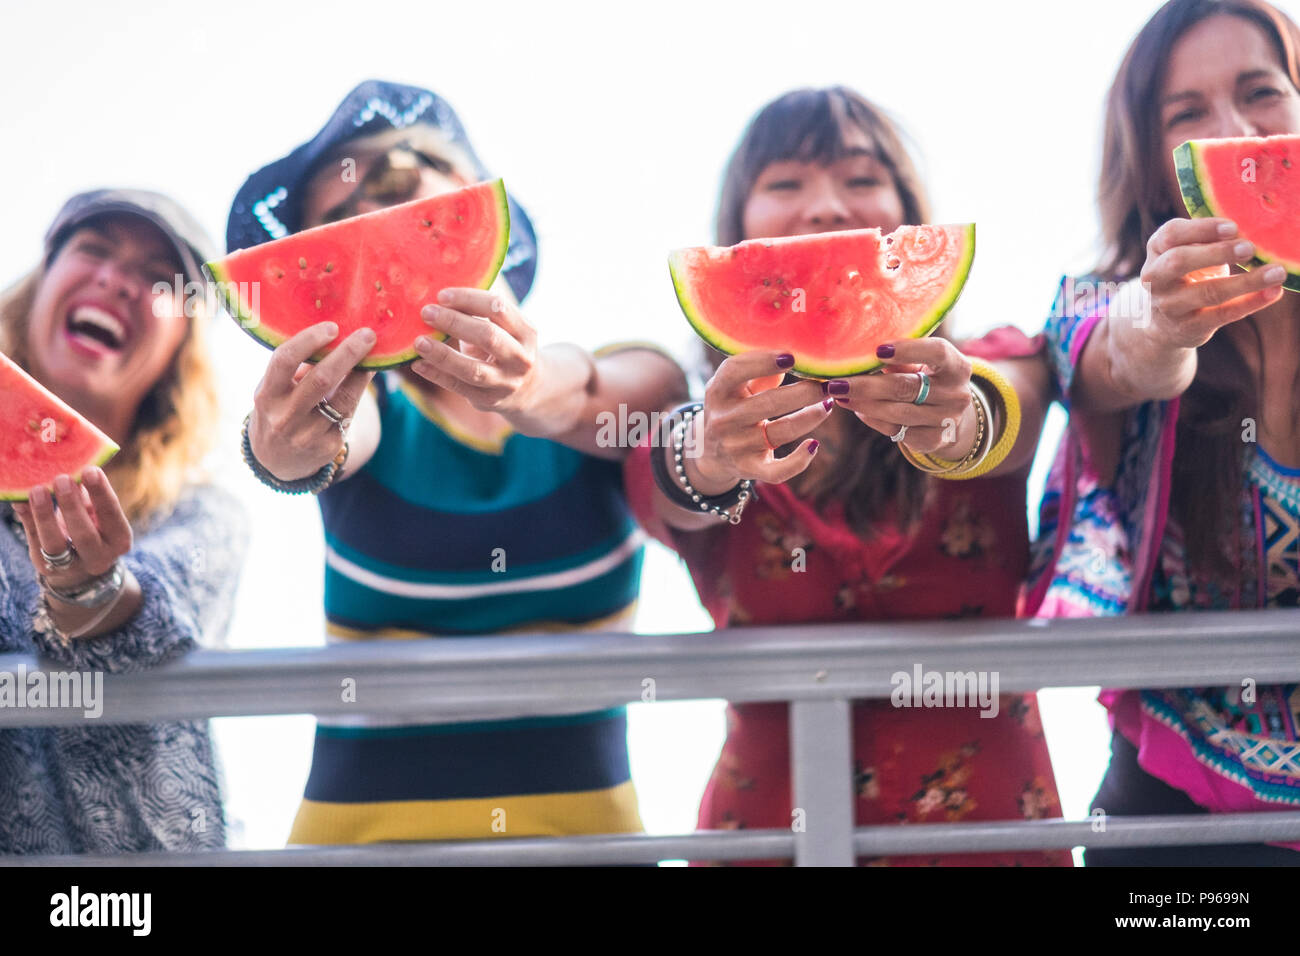 four nice happy young females caucasian eating watermelon to celebrate summer time and warm day with sun near the ocean. beautiful colors for group of - Stock Image